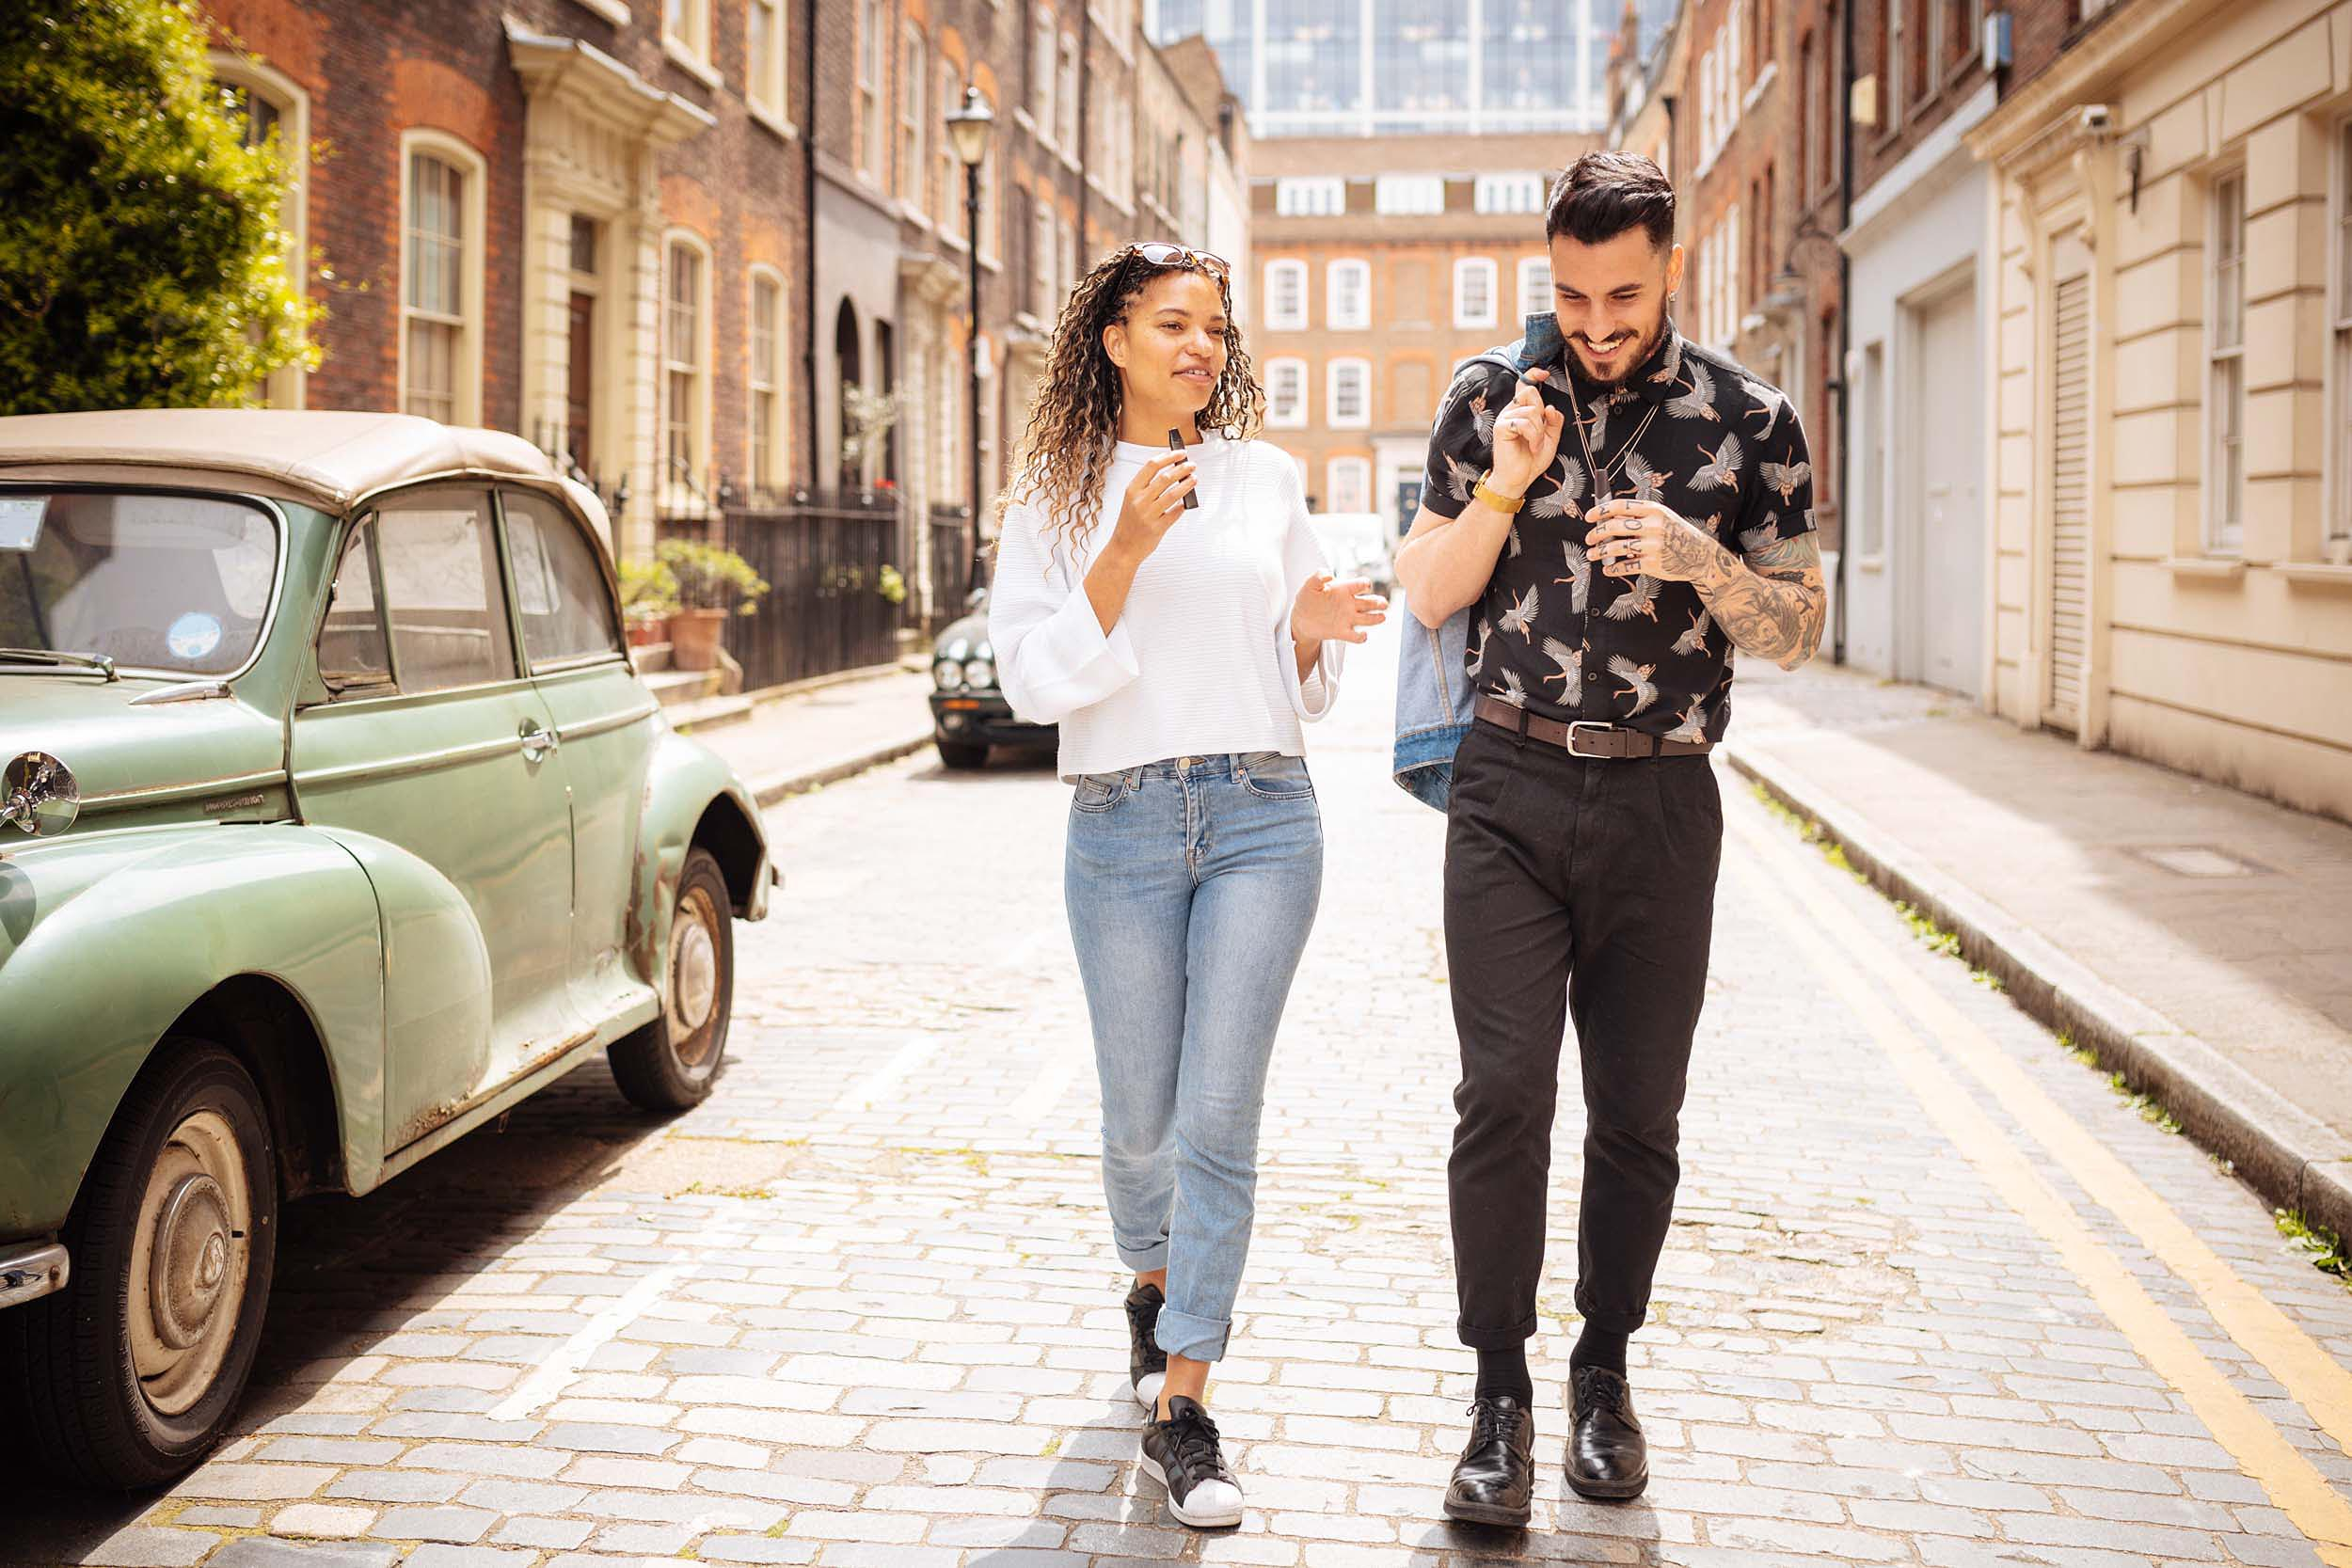 couple-walking-street-urban-lifestyle-photographer